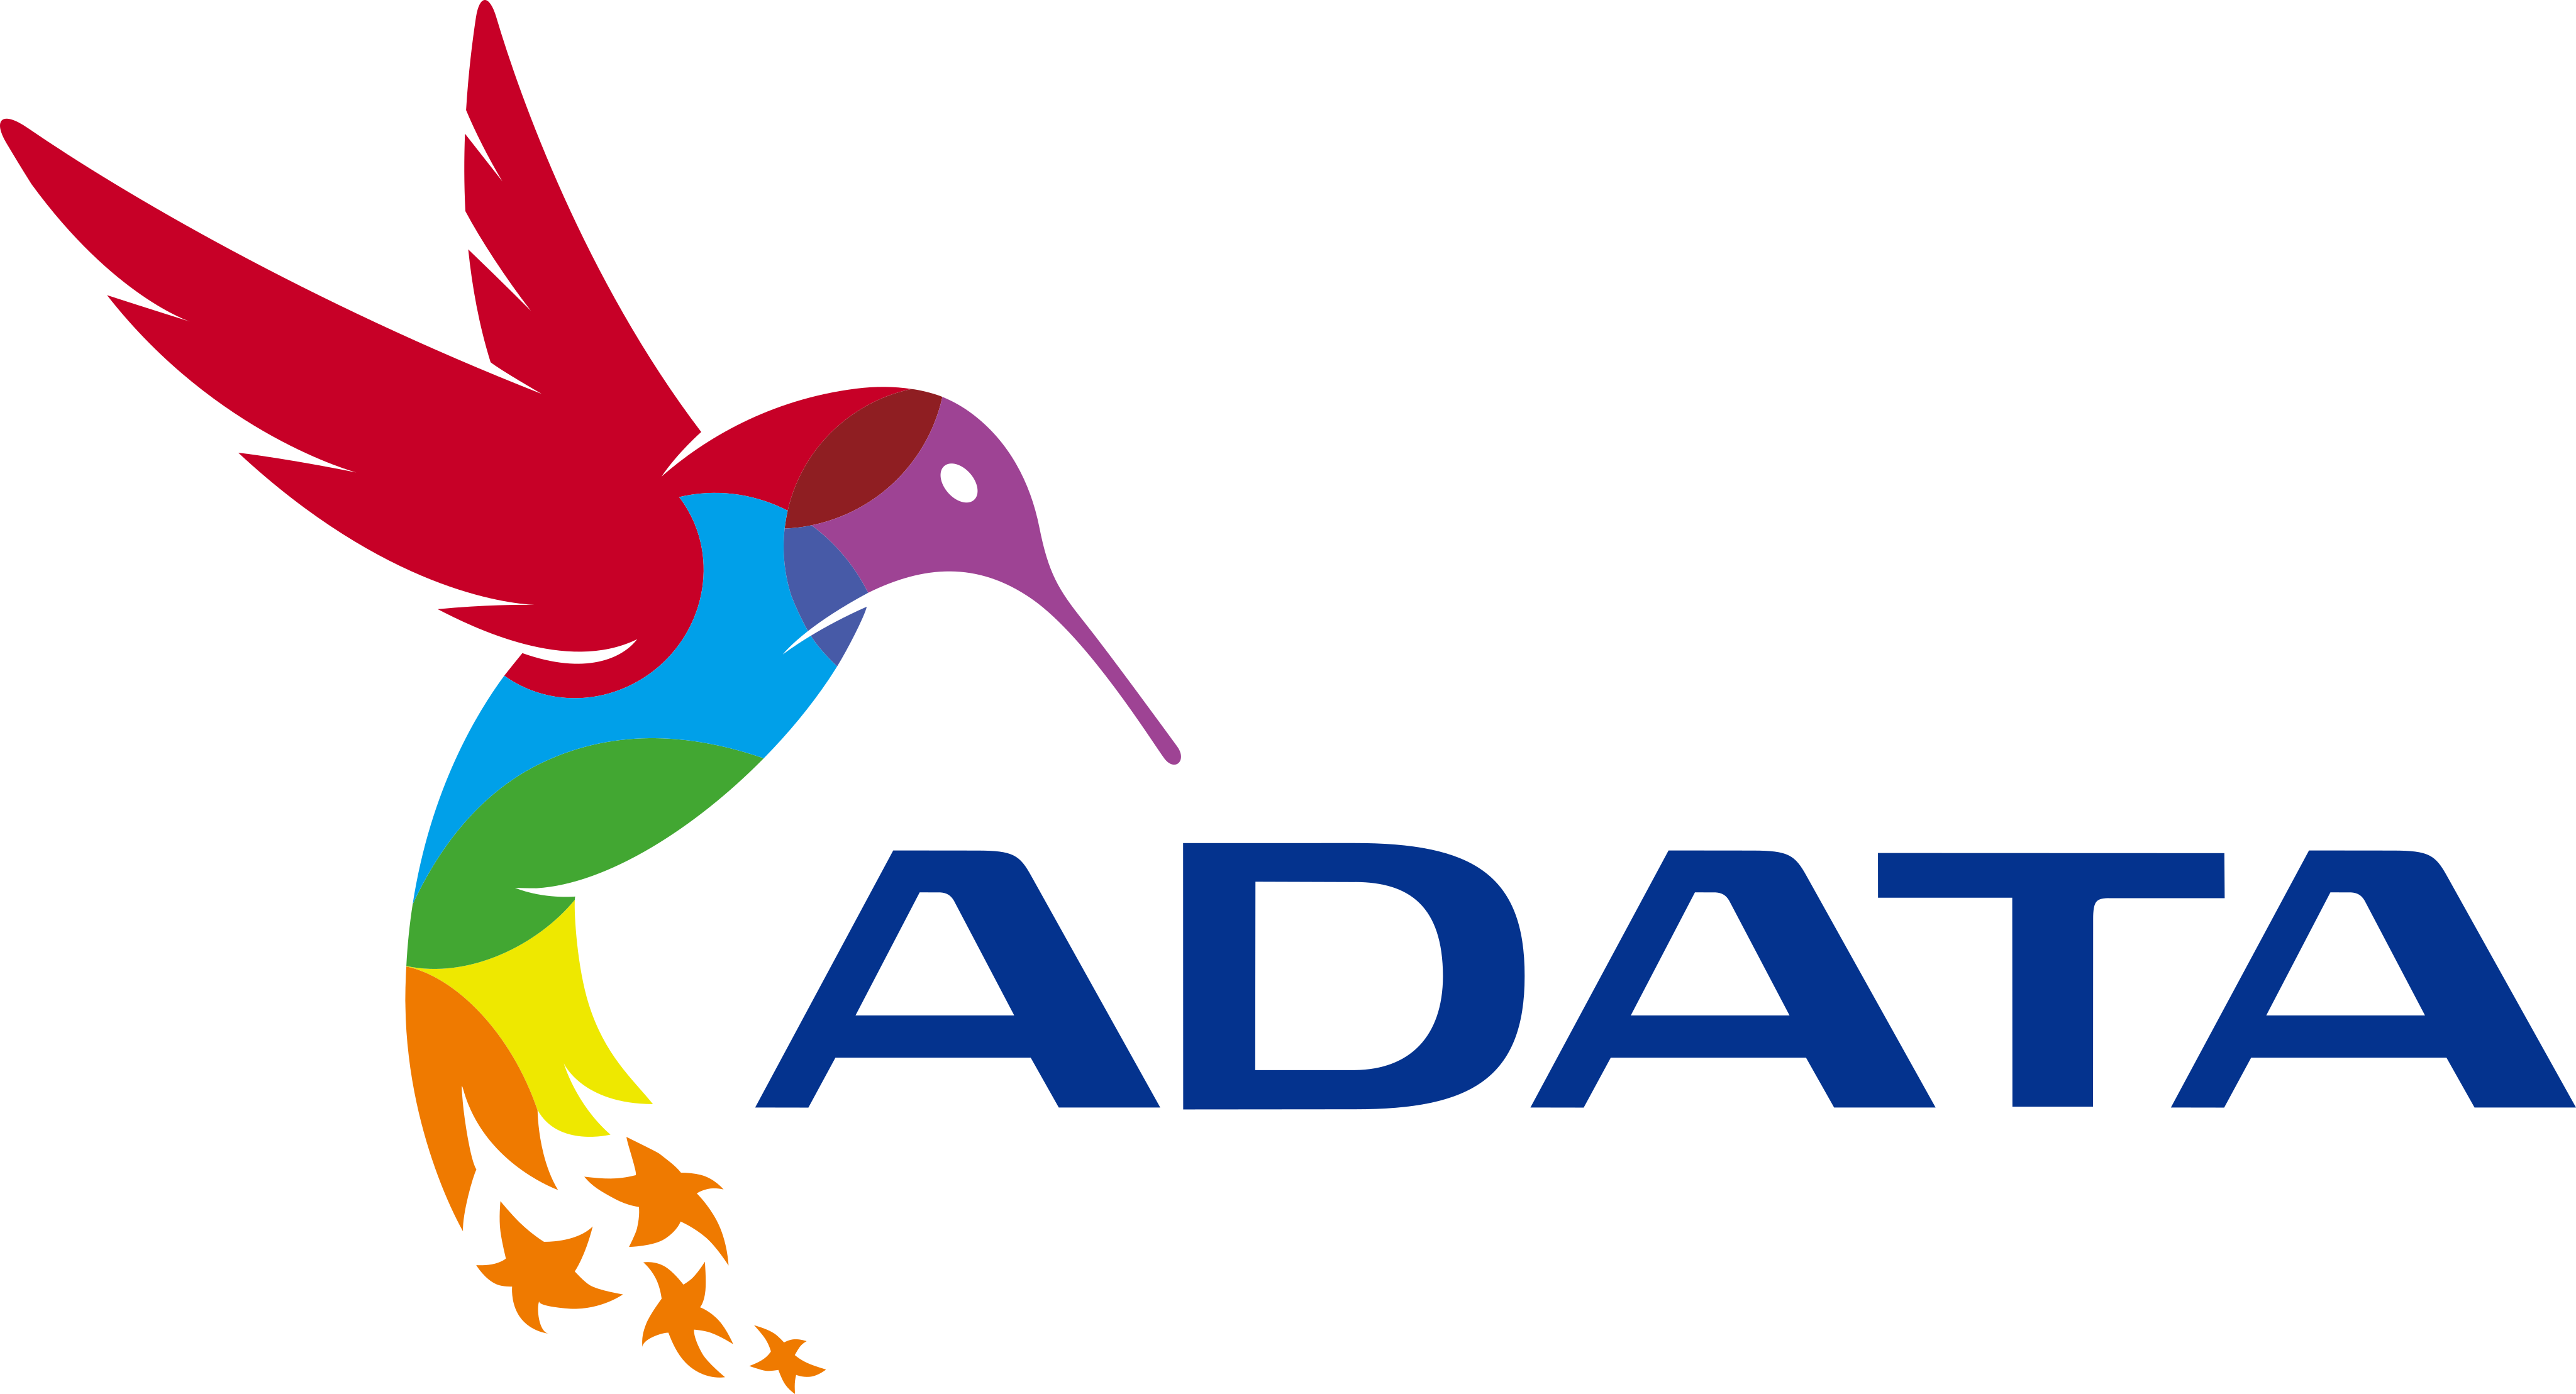 ADATA Logo - PNG and Vector - Logo Download